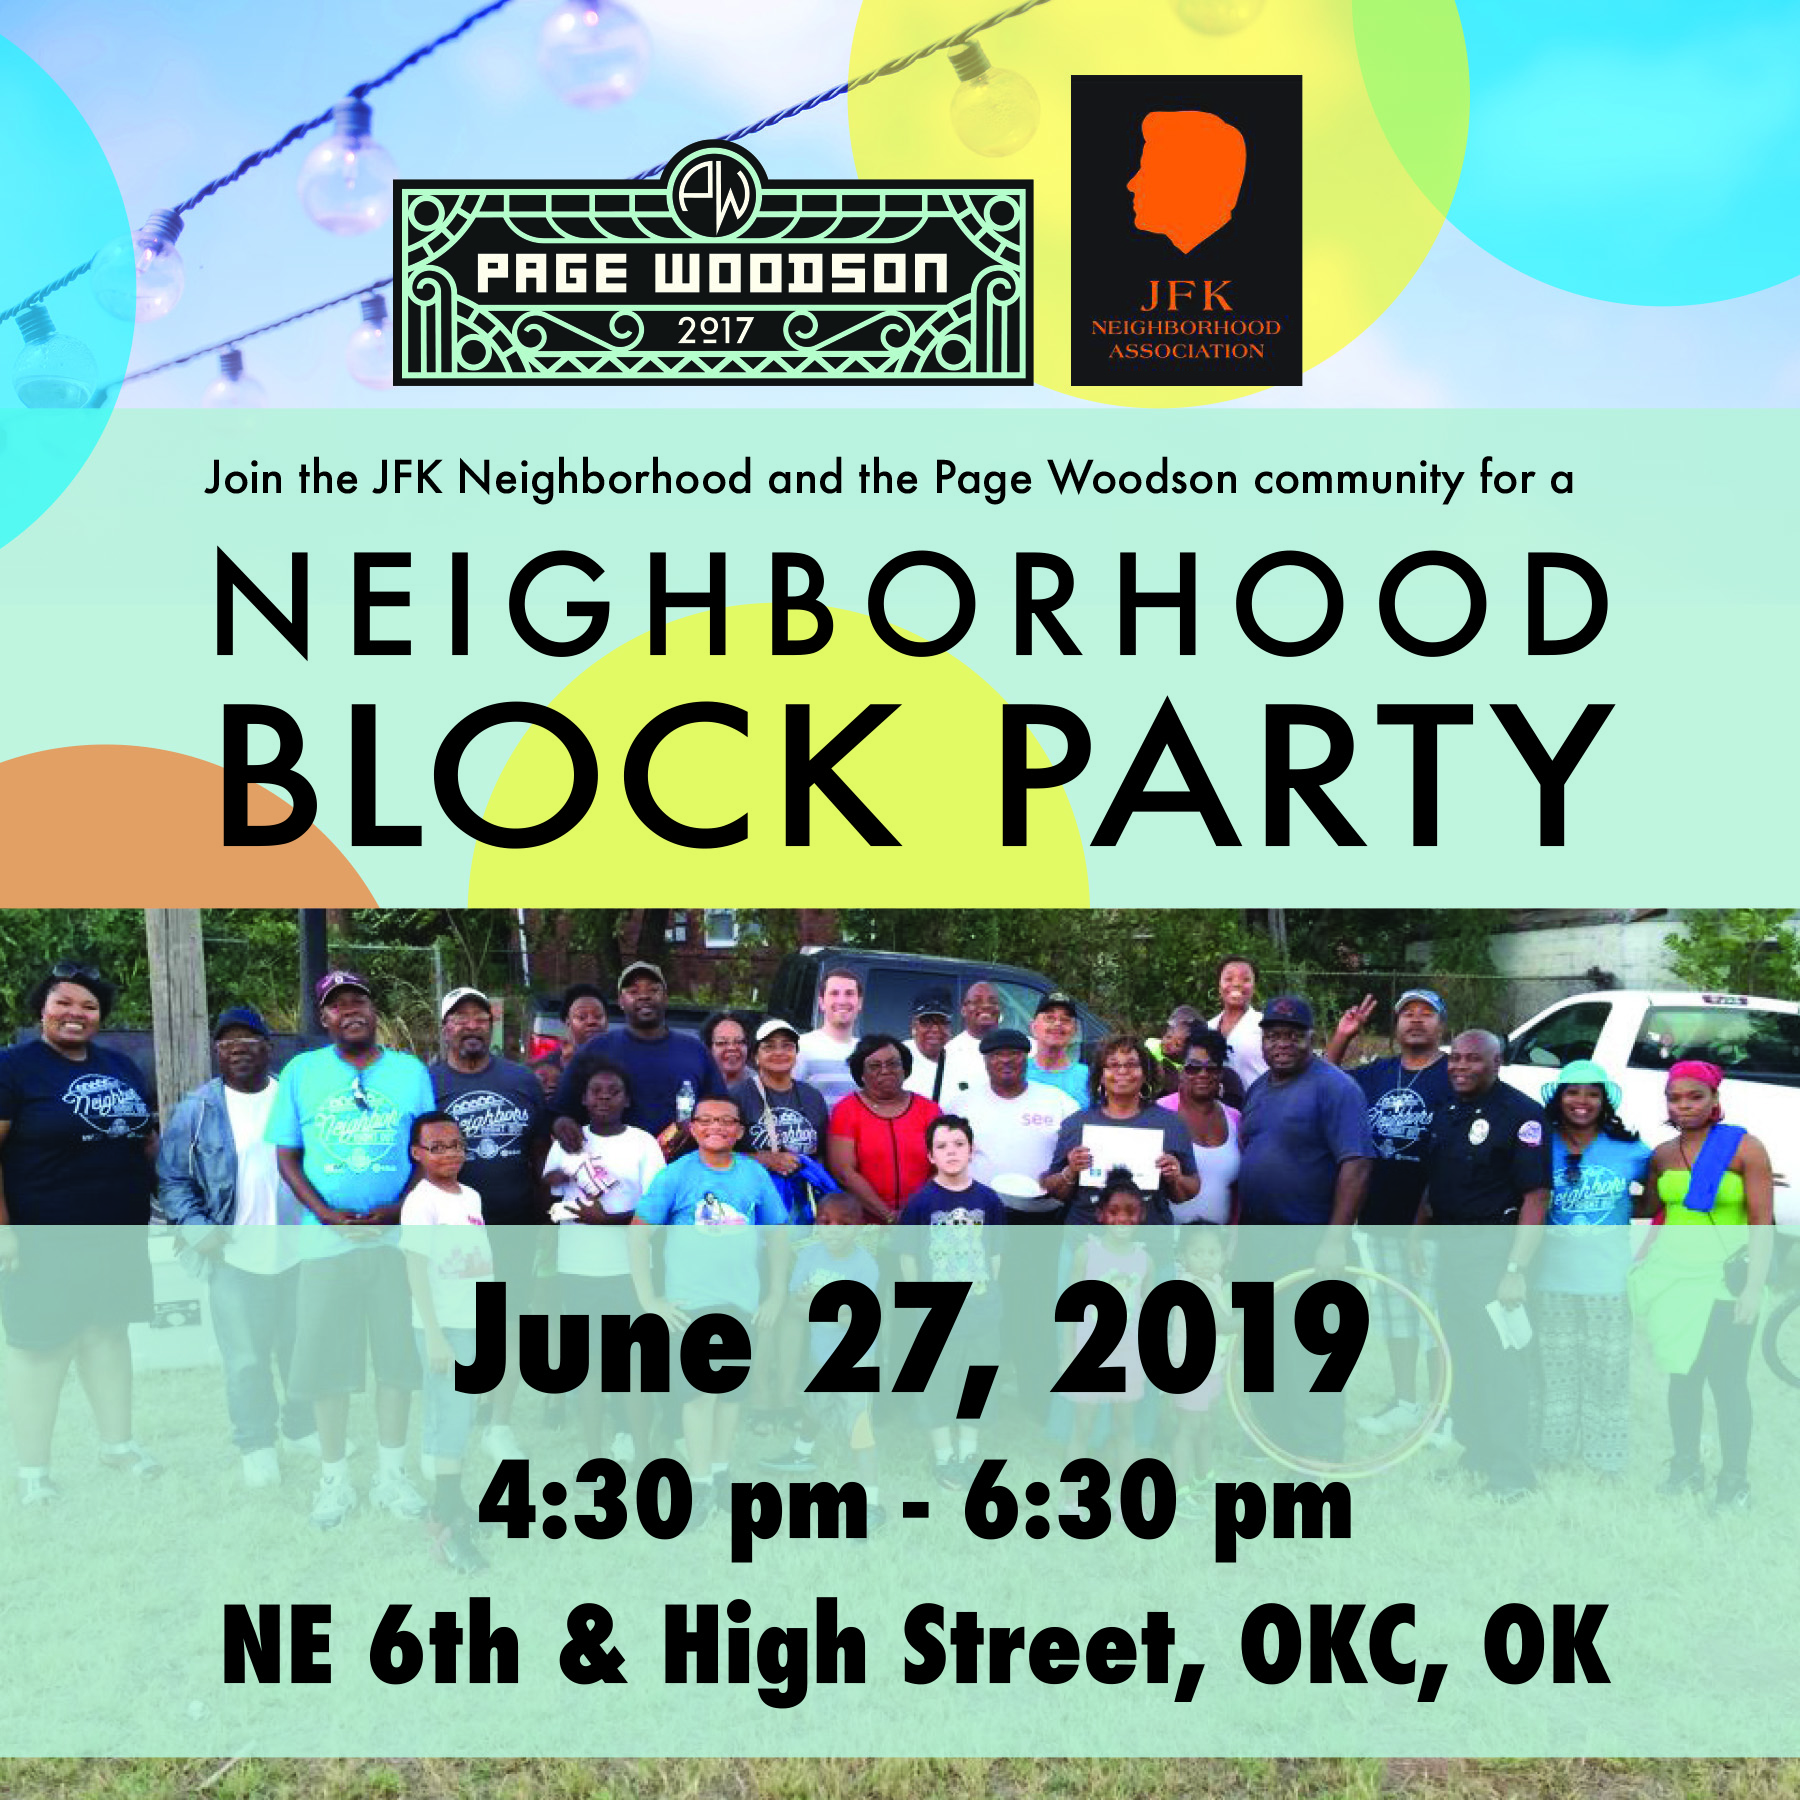 JFK Neighborhood and Page Woodson Block Party - June 27, 2019 - 4:30 pm - 6:30 pm, NE 6th & High St., Oklahoma City, OKJoin the JFK Neighborhood and the Page Woodson community for a Neighborhood Block Party!Come eat, fellowship, and find out what we are doing as a community!Spokies Station • Gardens • Construction Phase III • New Coffee Shop • Restaurants • Bookstore • Transportation • See The Seven Historical ExhibitFor more information, contact Kim at (405) 601-1989or email jfkneighborhood@gmail.com